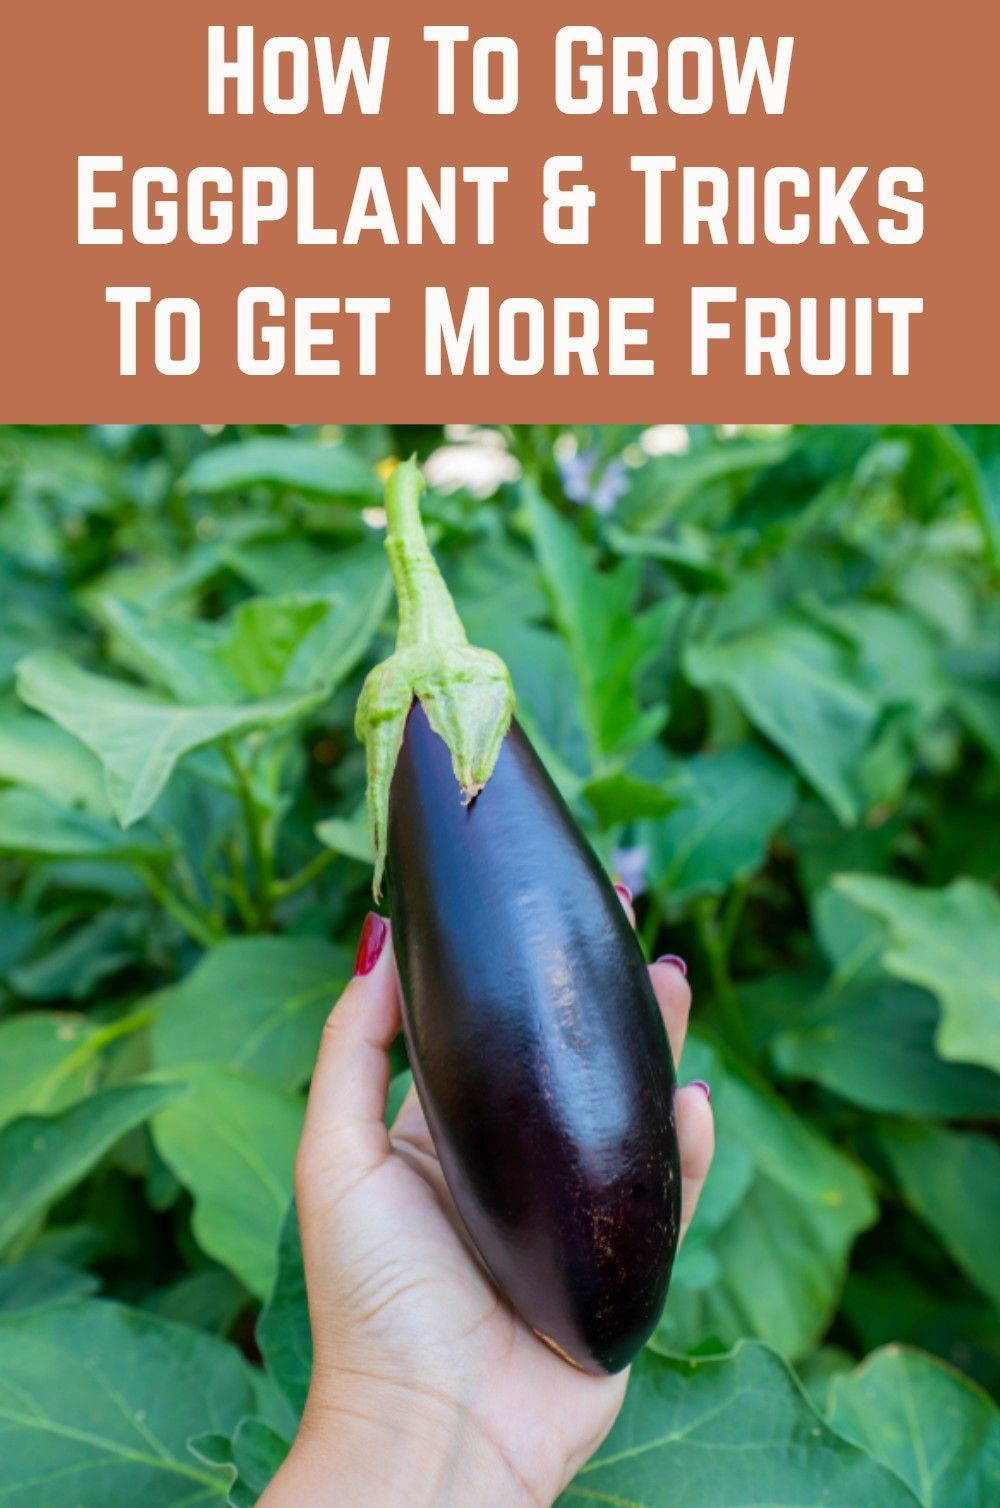 How To Grow Eggplant And Tricks To Get More Fruit In 2020 Tomato Container Gardening Eggplant Plant Growing Eggplant